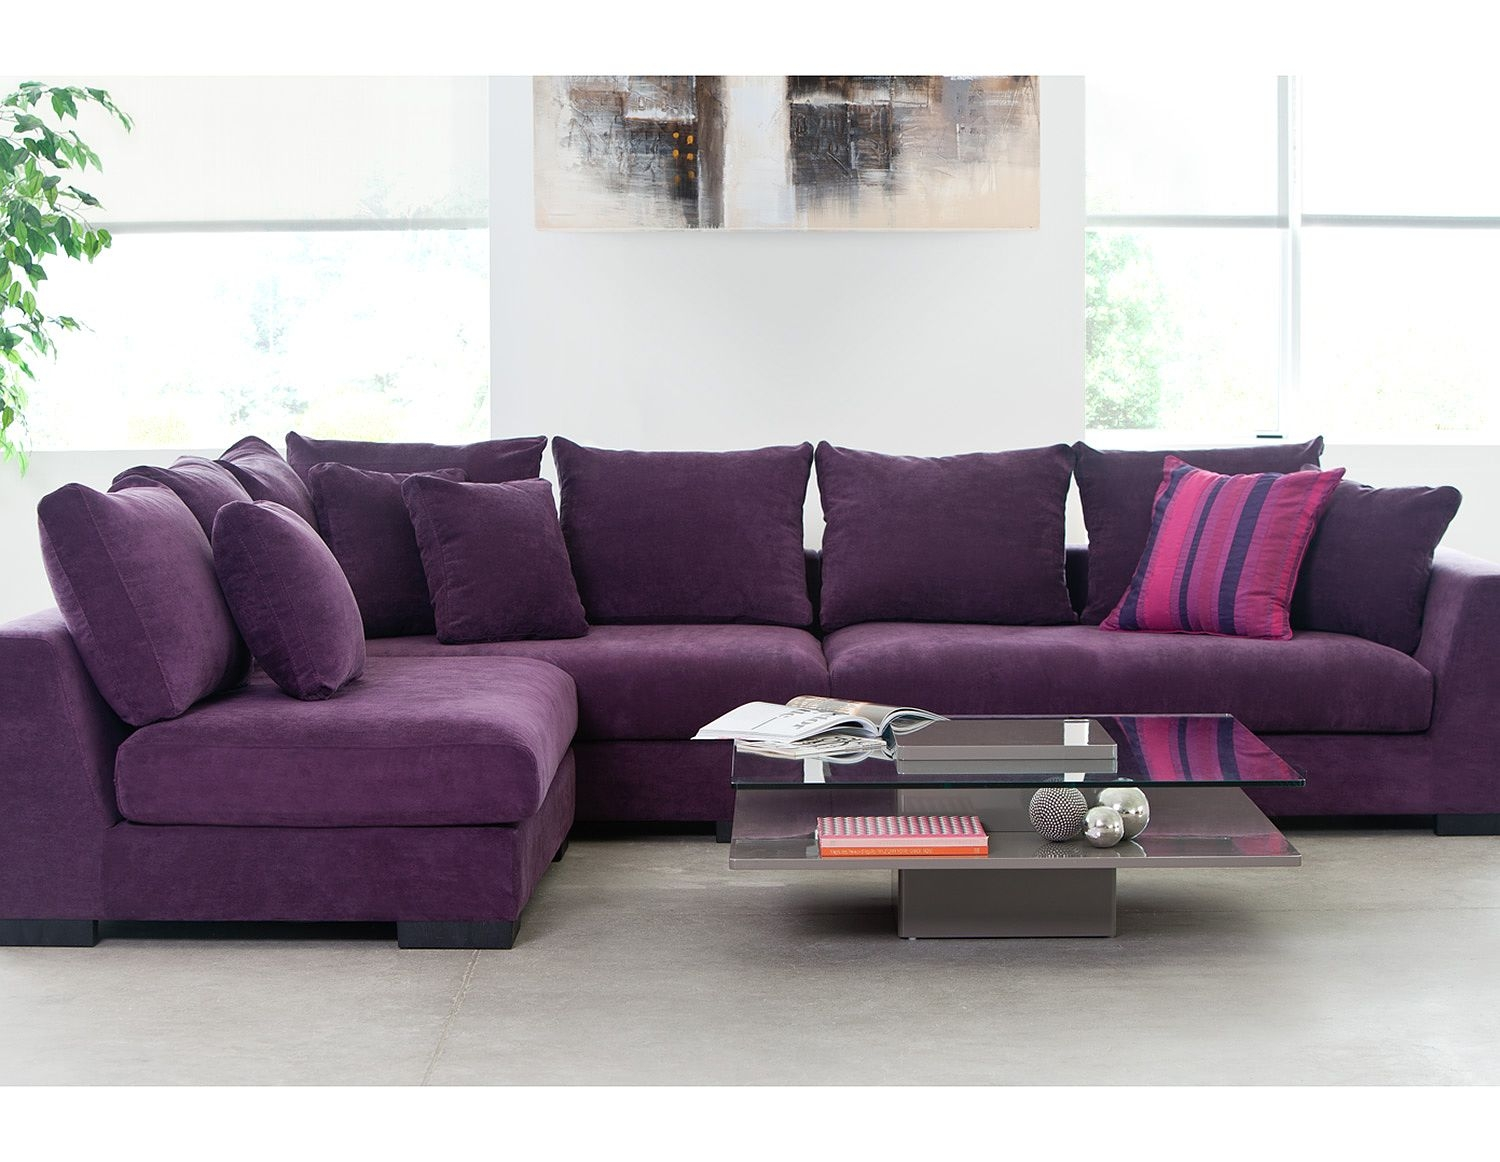 Living Room Sectional Sofas Cooper Purple Faints A Couch Regarding Colorful Sectional Sofas (View 7 of 15)